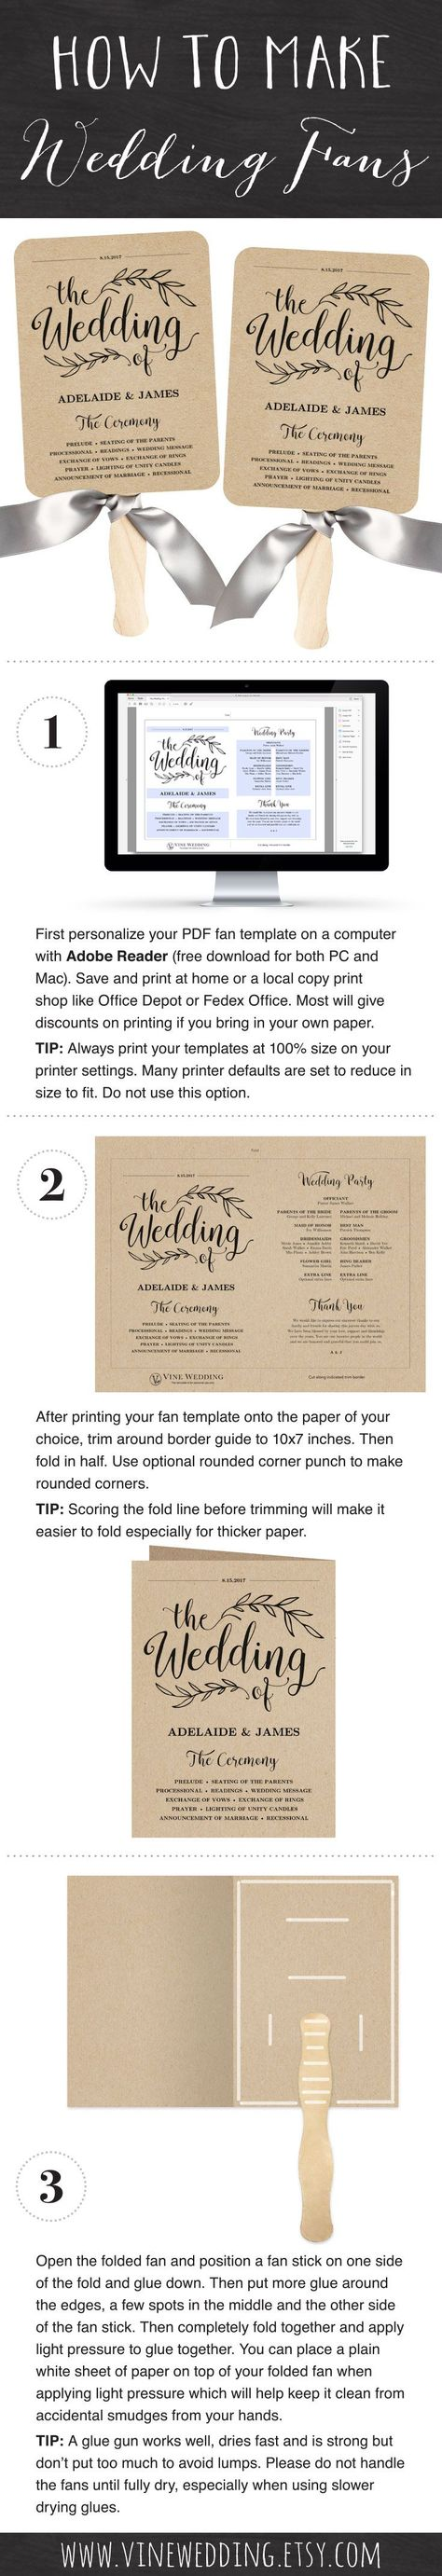 Printable wedding fan program template  DIY kraft paper